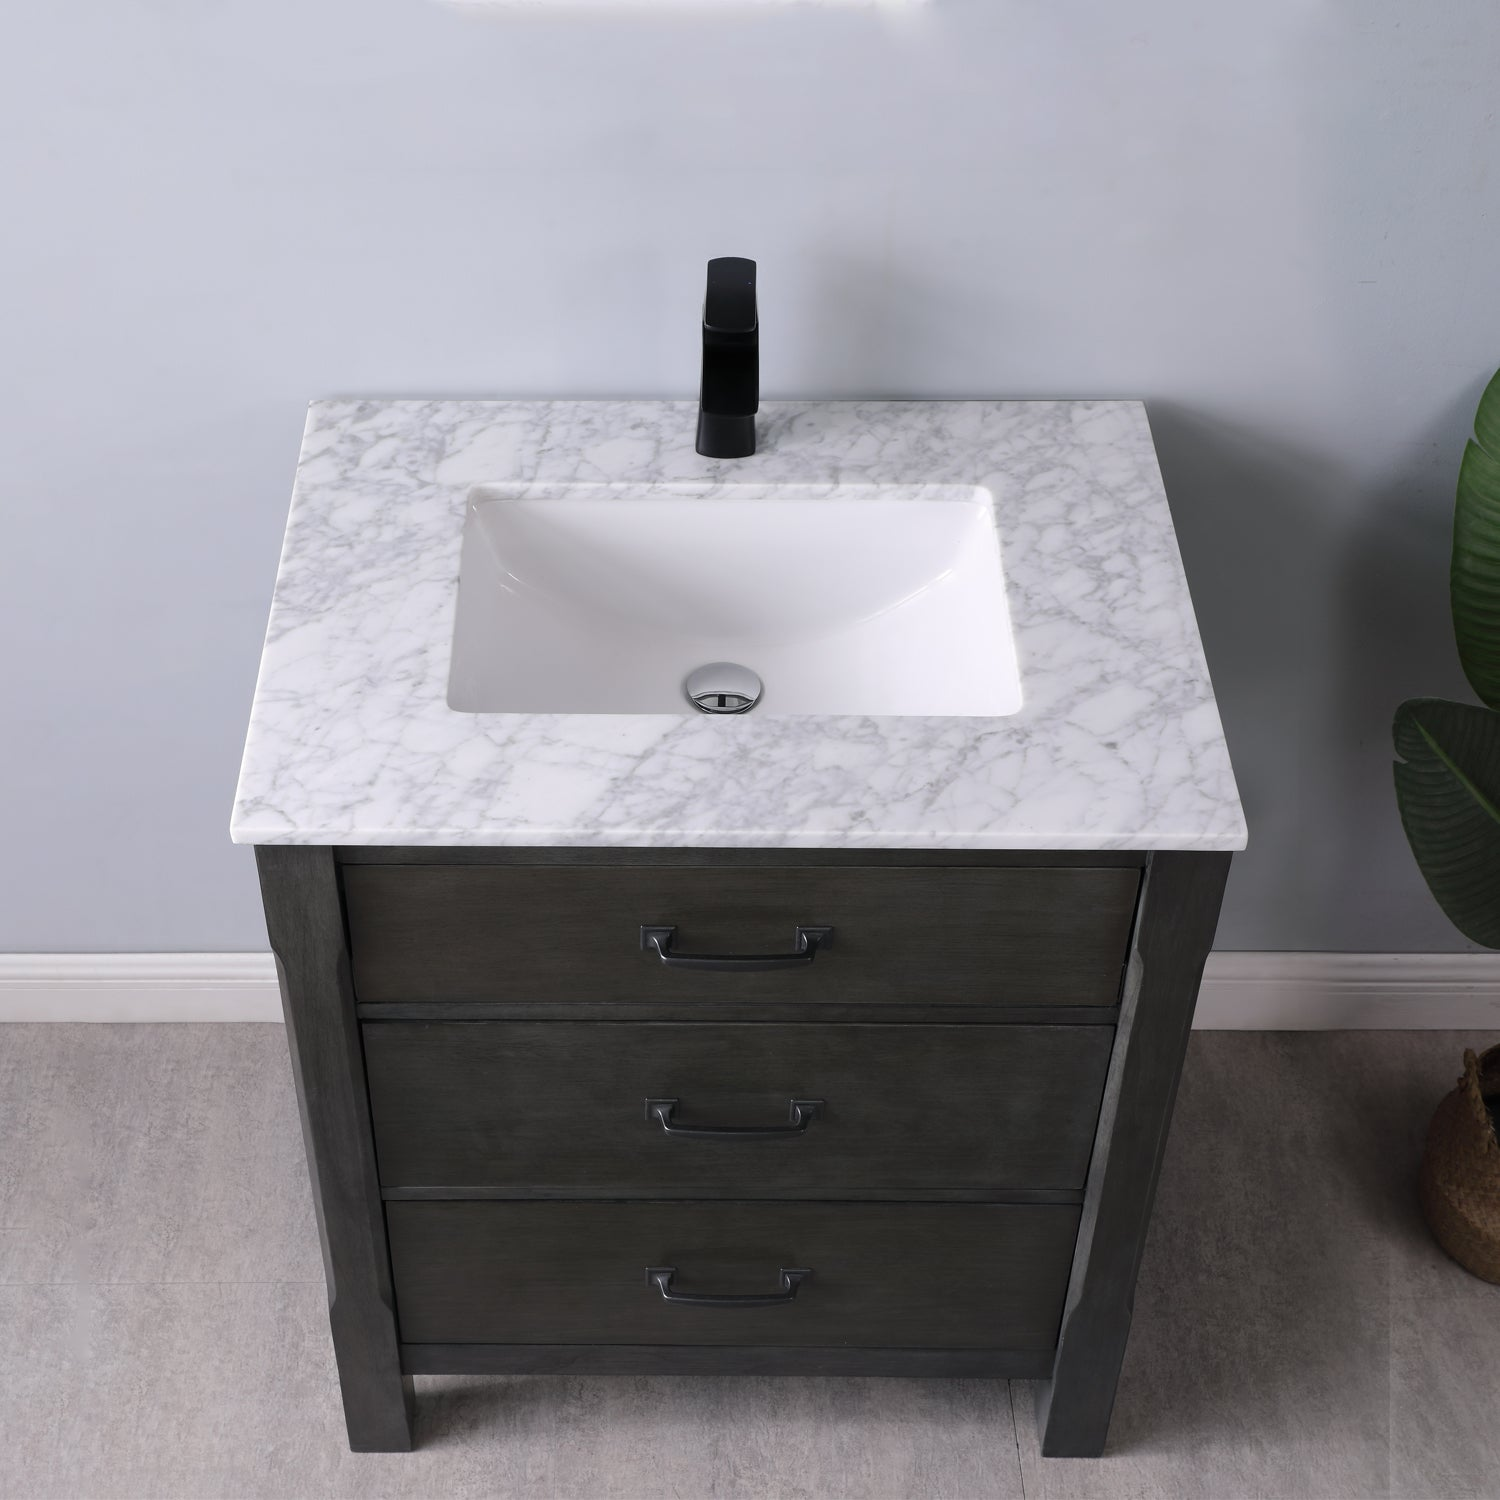 "Maribella 30"" Single Bathroom Vanity Set in Rust Black and Carrara White Marble Countertop without Mirror"